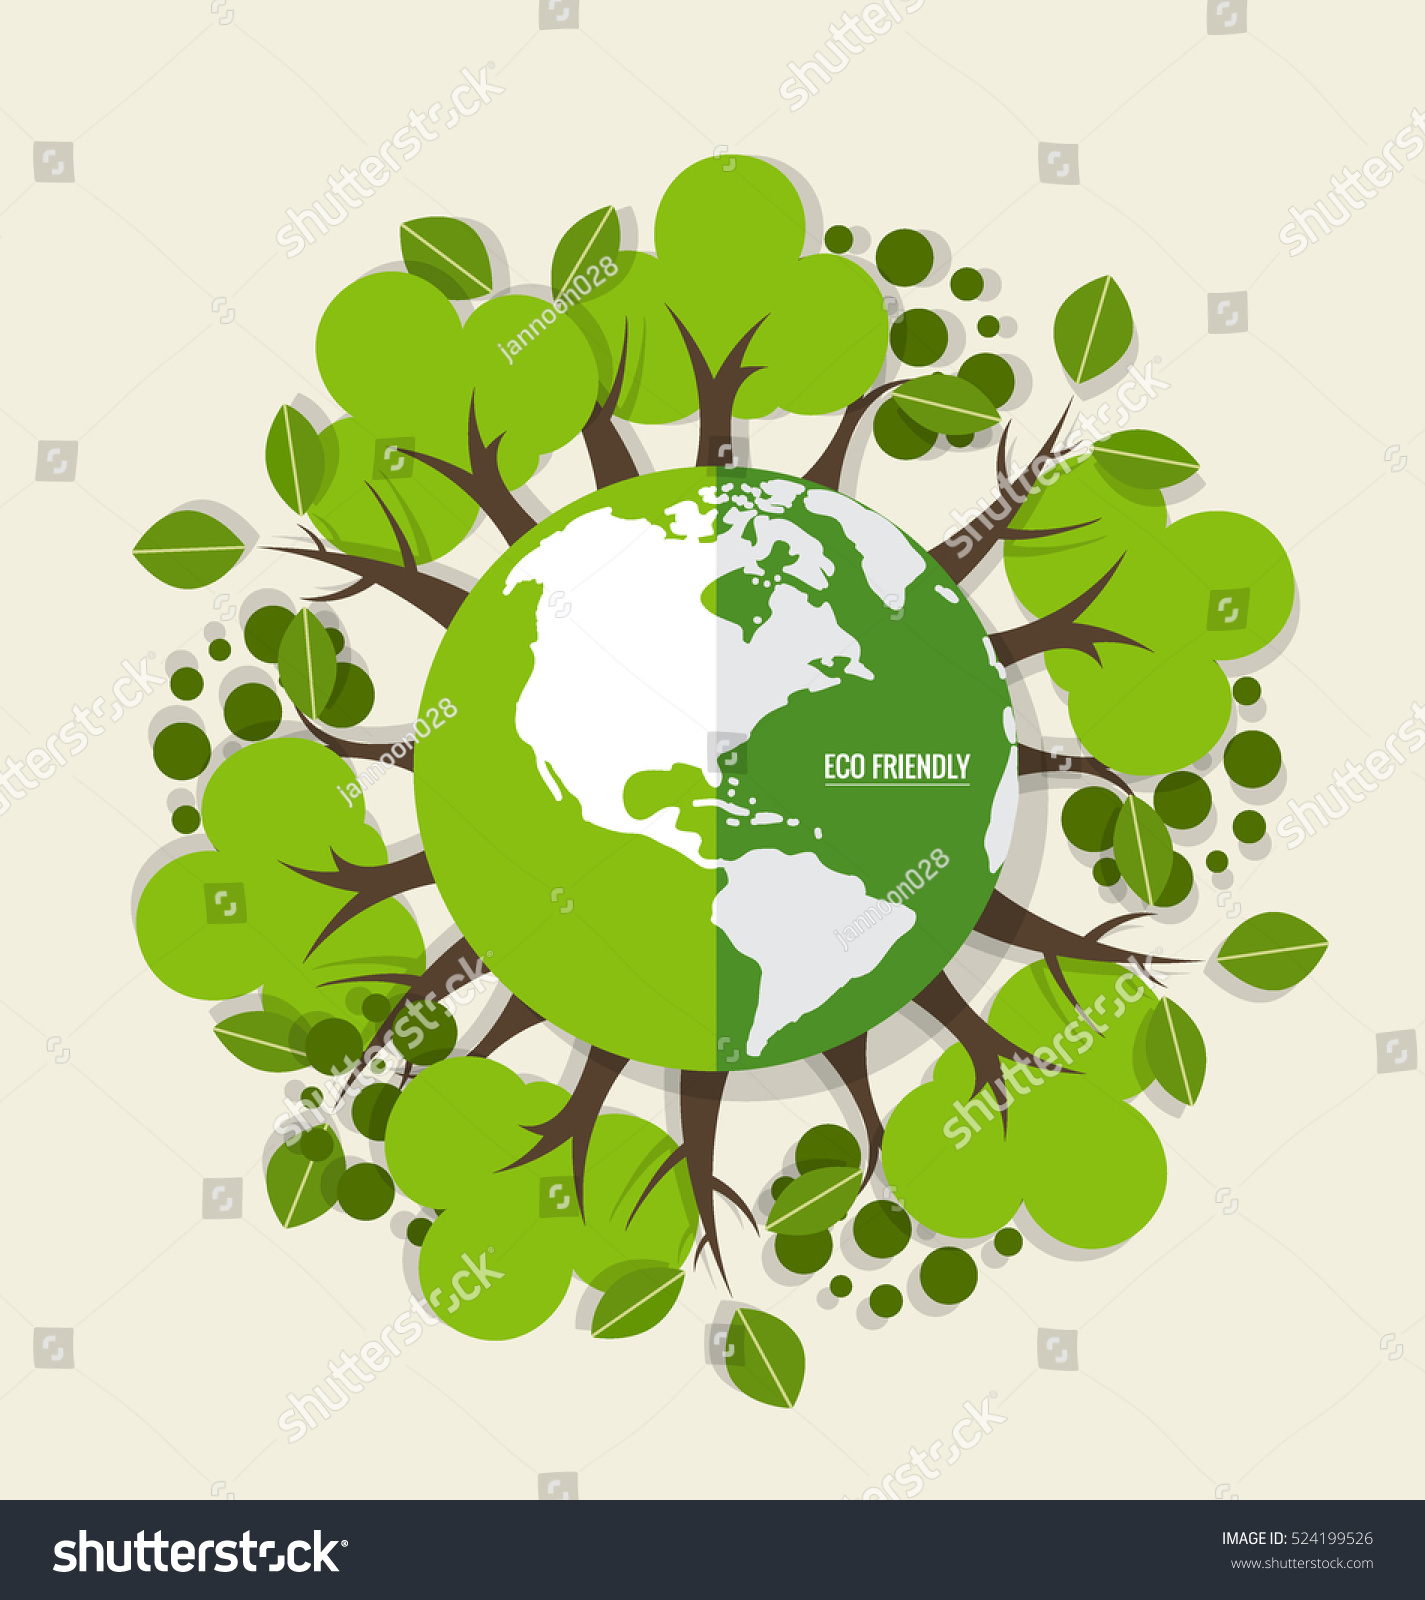 eco friendly ecology concept green eco stock vector 524199526 shutterstock. Black Bedroom Furniture Sets. Home Design Ideas